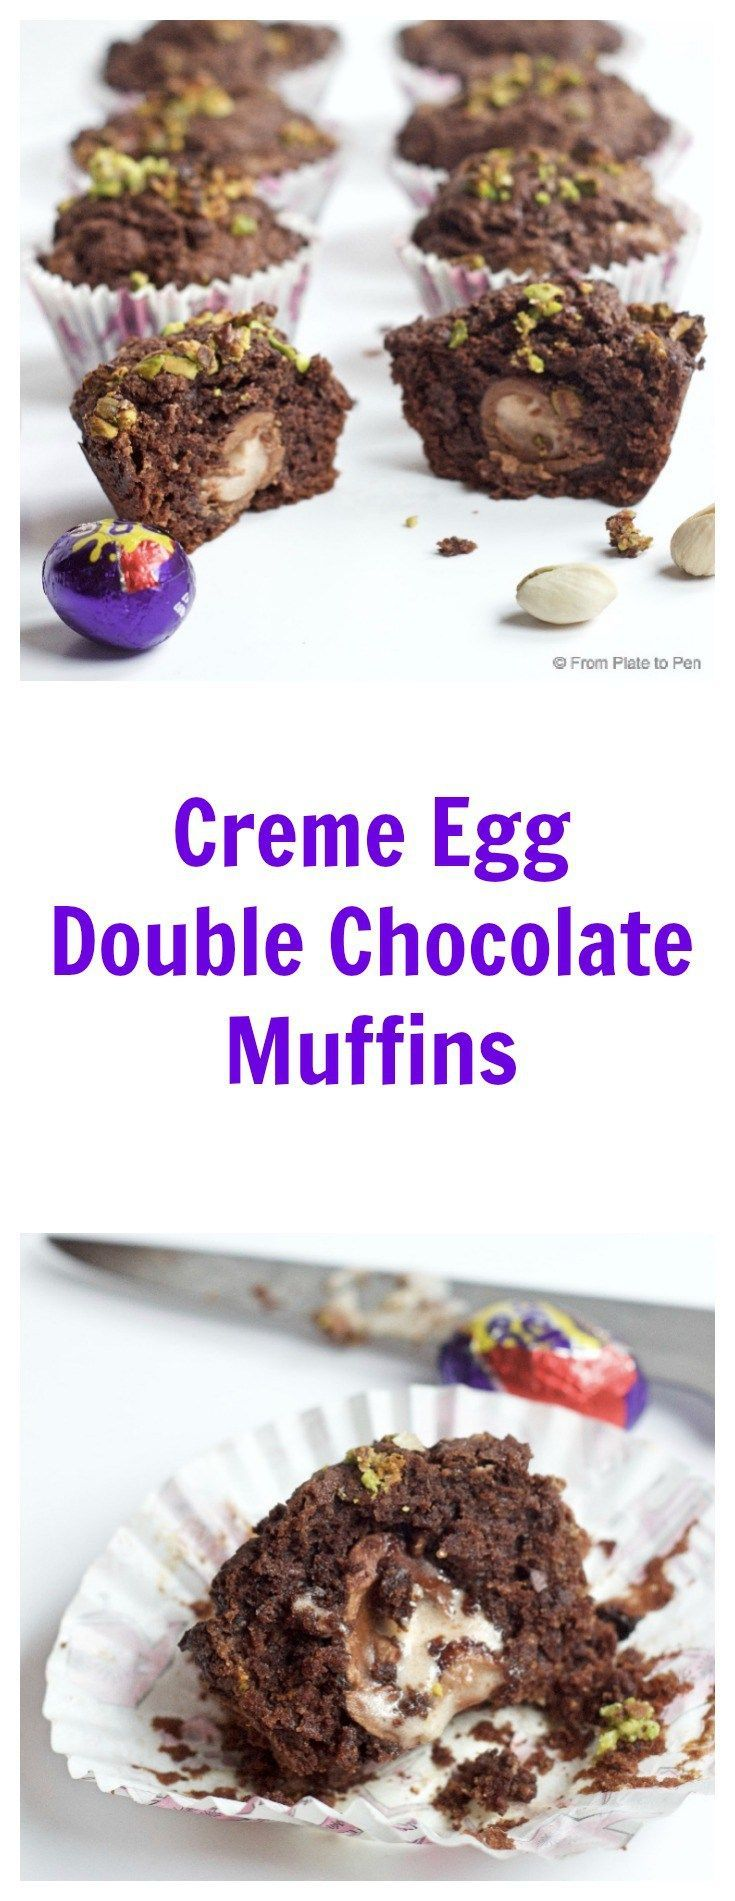 Creme Egg Double Chocolate Muffins with caramelised pistachios topping. A yummy tea time treat to bake for Easter that all the family can enjoy.